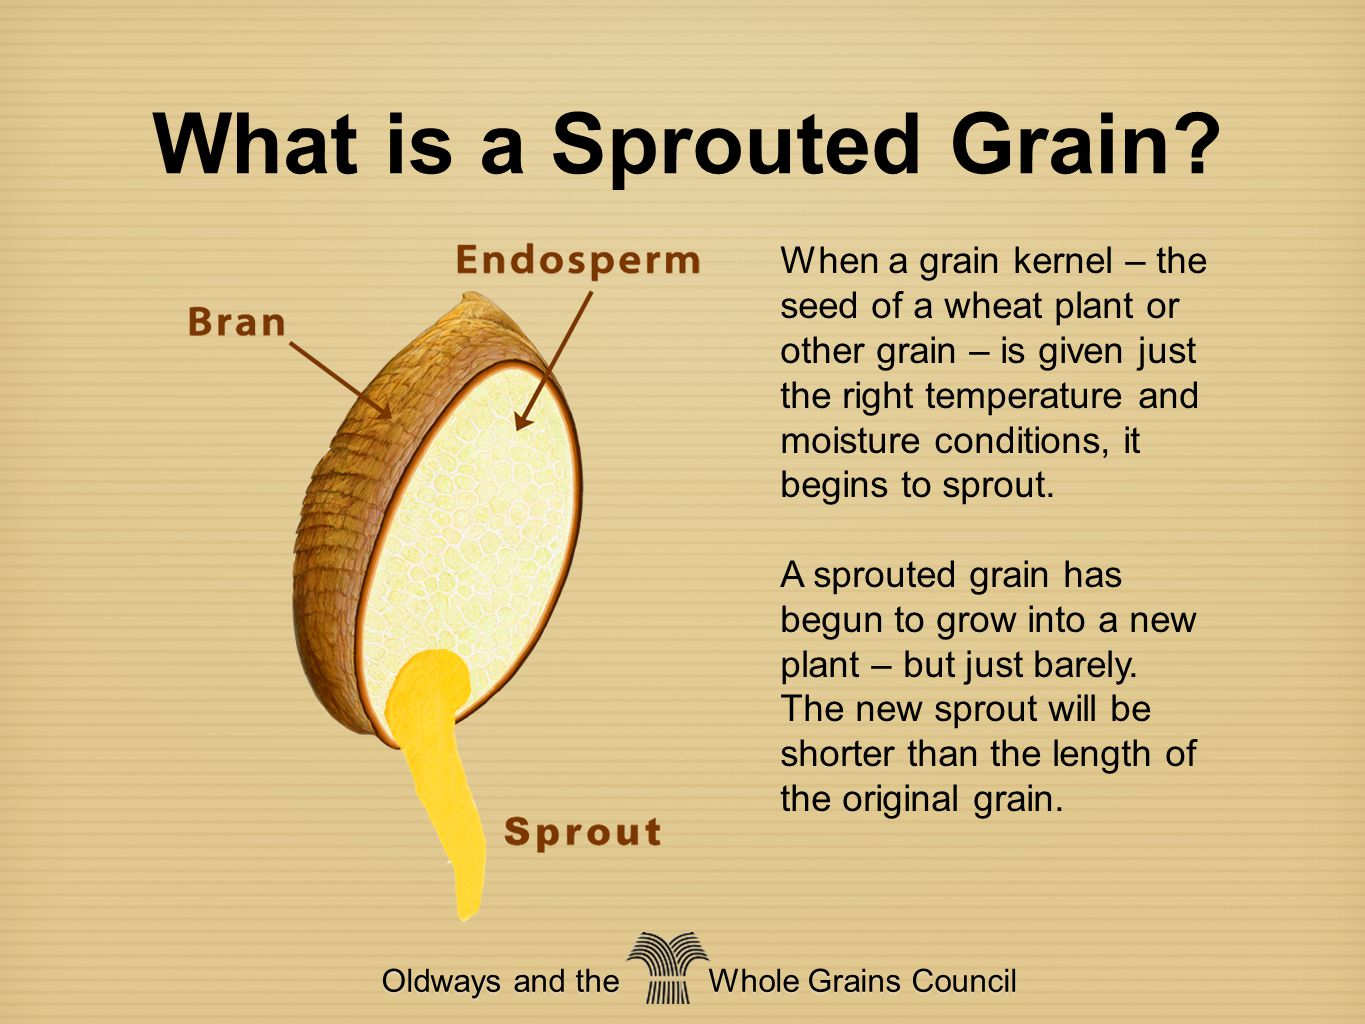 Unlocking a Grain's Nutrients Oldways and the Whole Grains Council Sprouting grains causes many changes including: Complex molecules become simpler and easier to digest Vitamin C increases Folate increases Antioxidants increase Insoluble fiber decreases Soluble fiber increases Gluten decreases … and more!